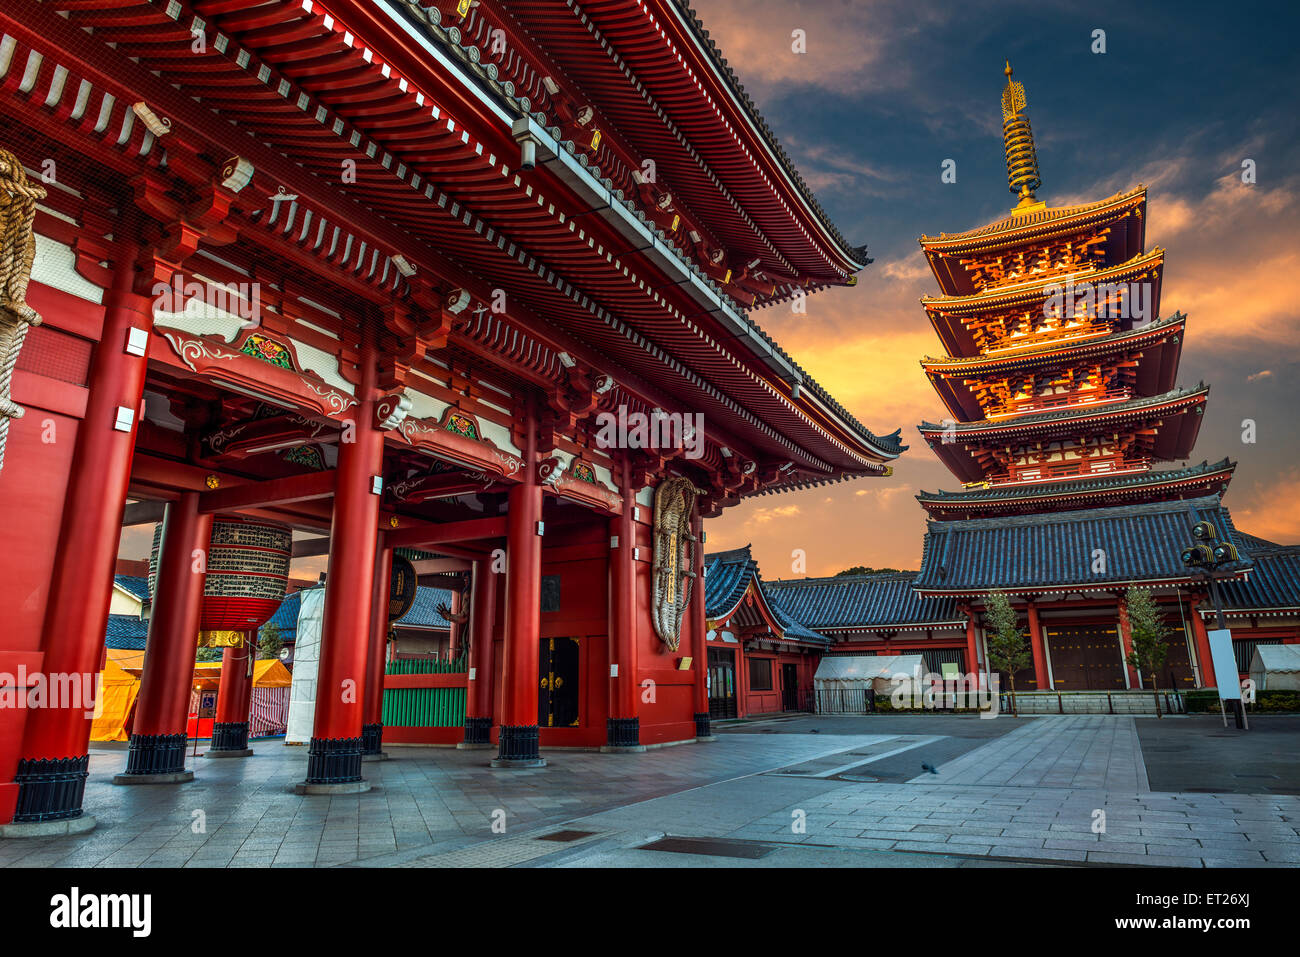 Sensoji Temple at dawn of the New Year. Sensoji Temple is the oldest temple in Tokyo, and one of its most famous - Stock Image